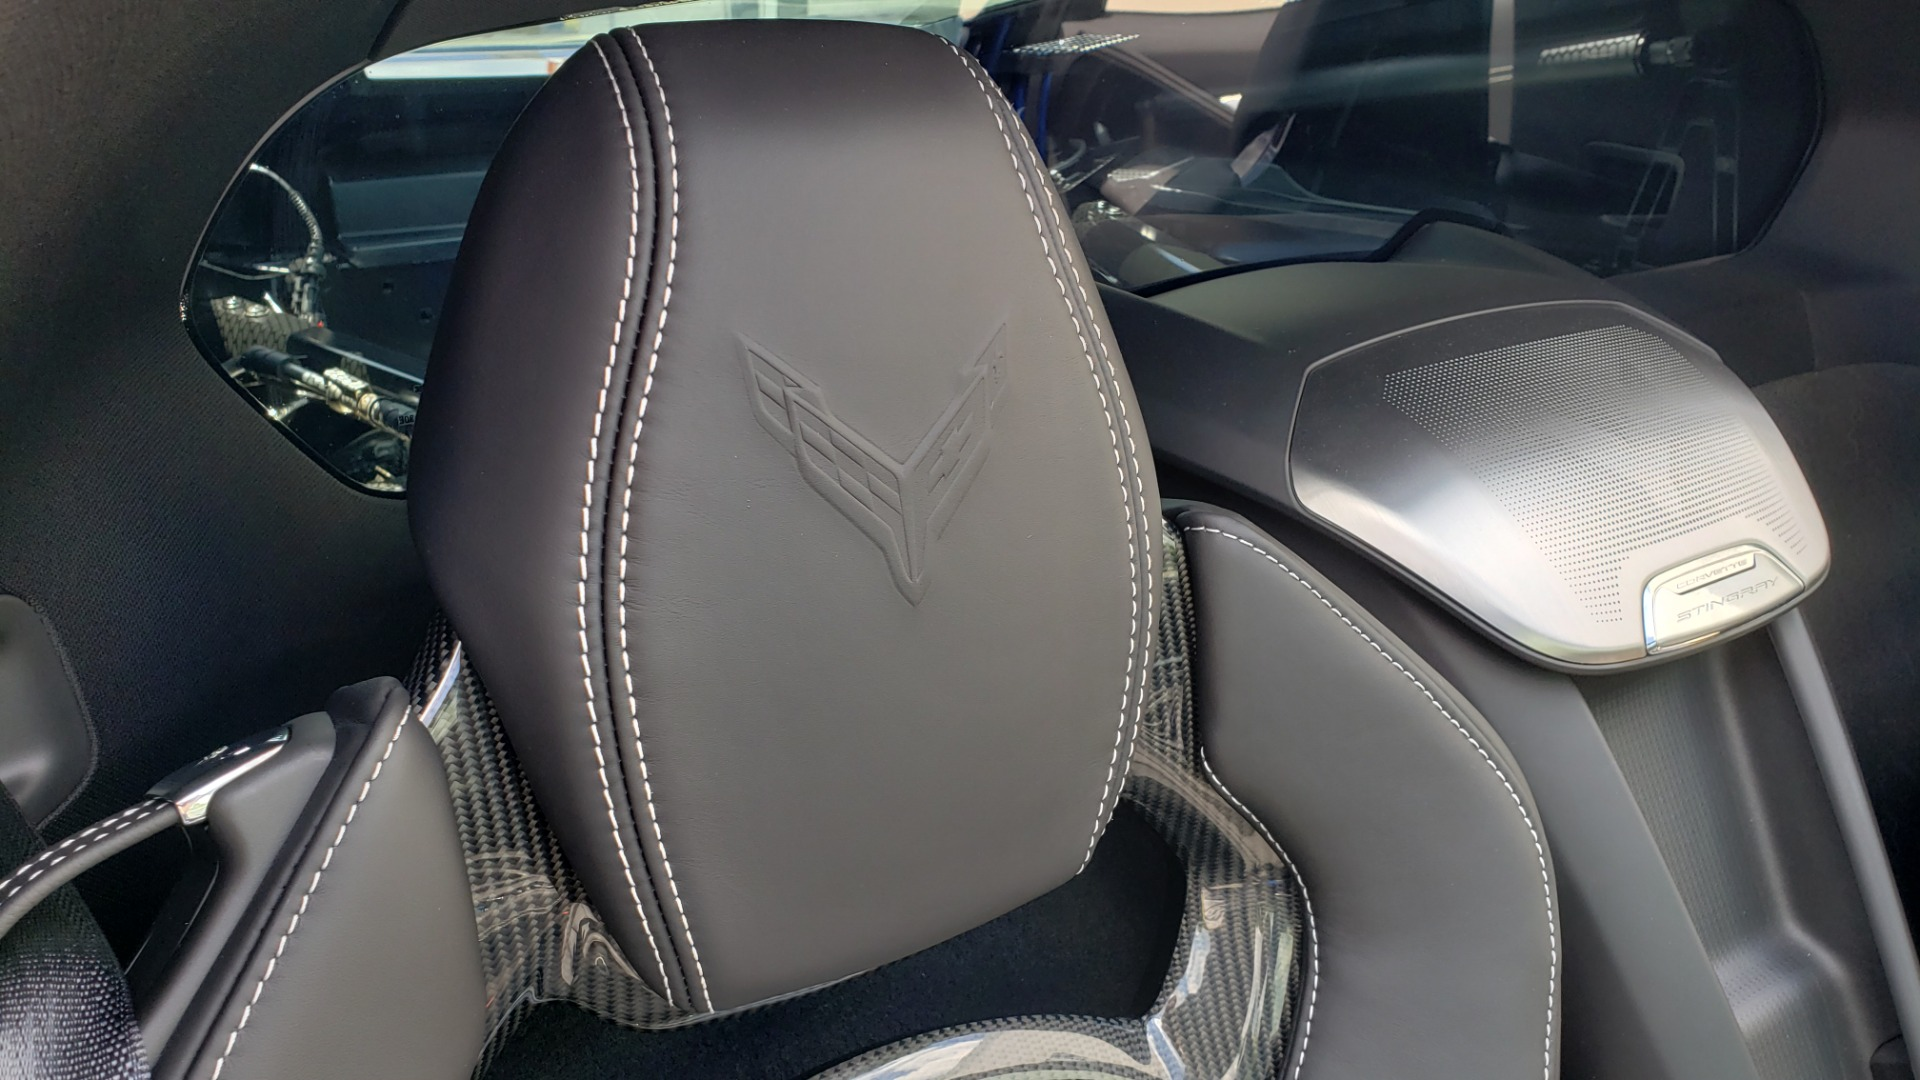 Used 2020 Chevrolet CORVETTE C8 STINGRAY COUPE 2LT / PERF & Z51 PKG / NAV / BOSE / 8-SPD AUTO / REARVIEW for sale Sold at Formula Imports in Charlotte NC 28227 39